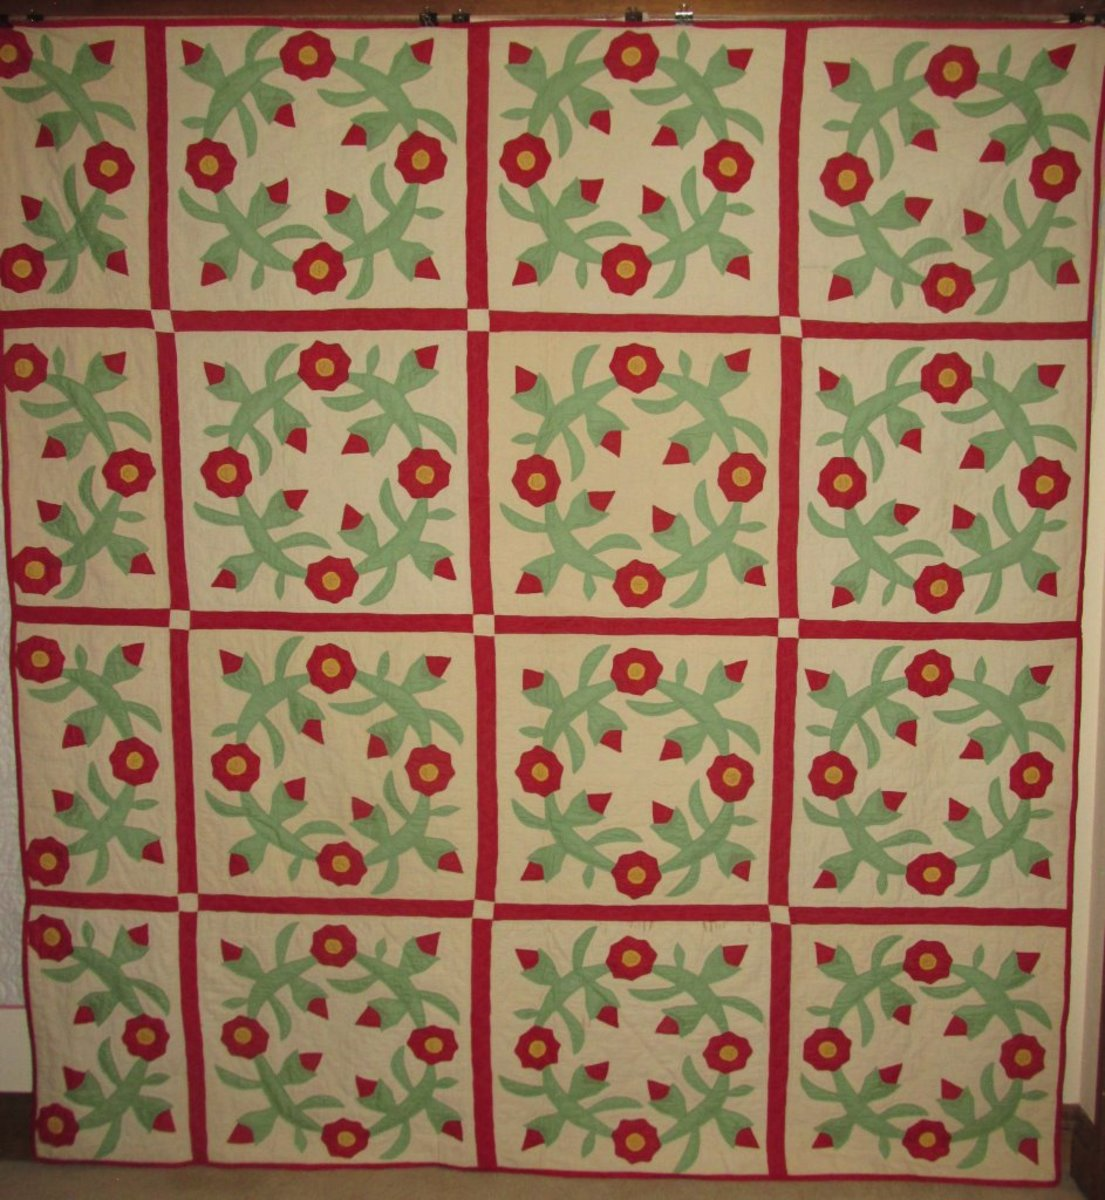 This antique quilt is a Rose Wreath hand appliqued quilt by Jeffie Beaver (Mrs. A. W. Smith 1894-1985).